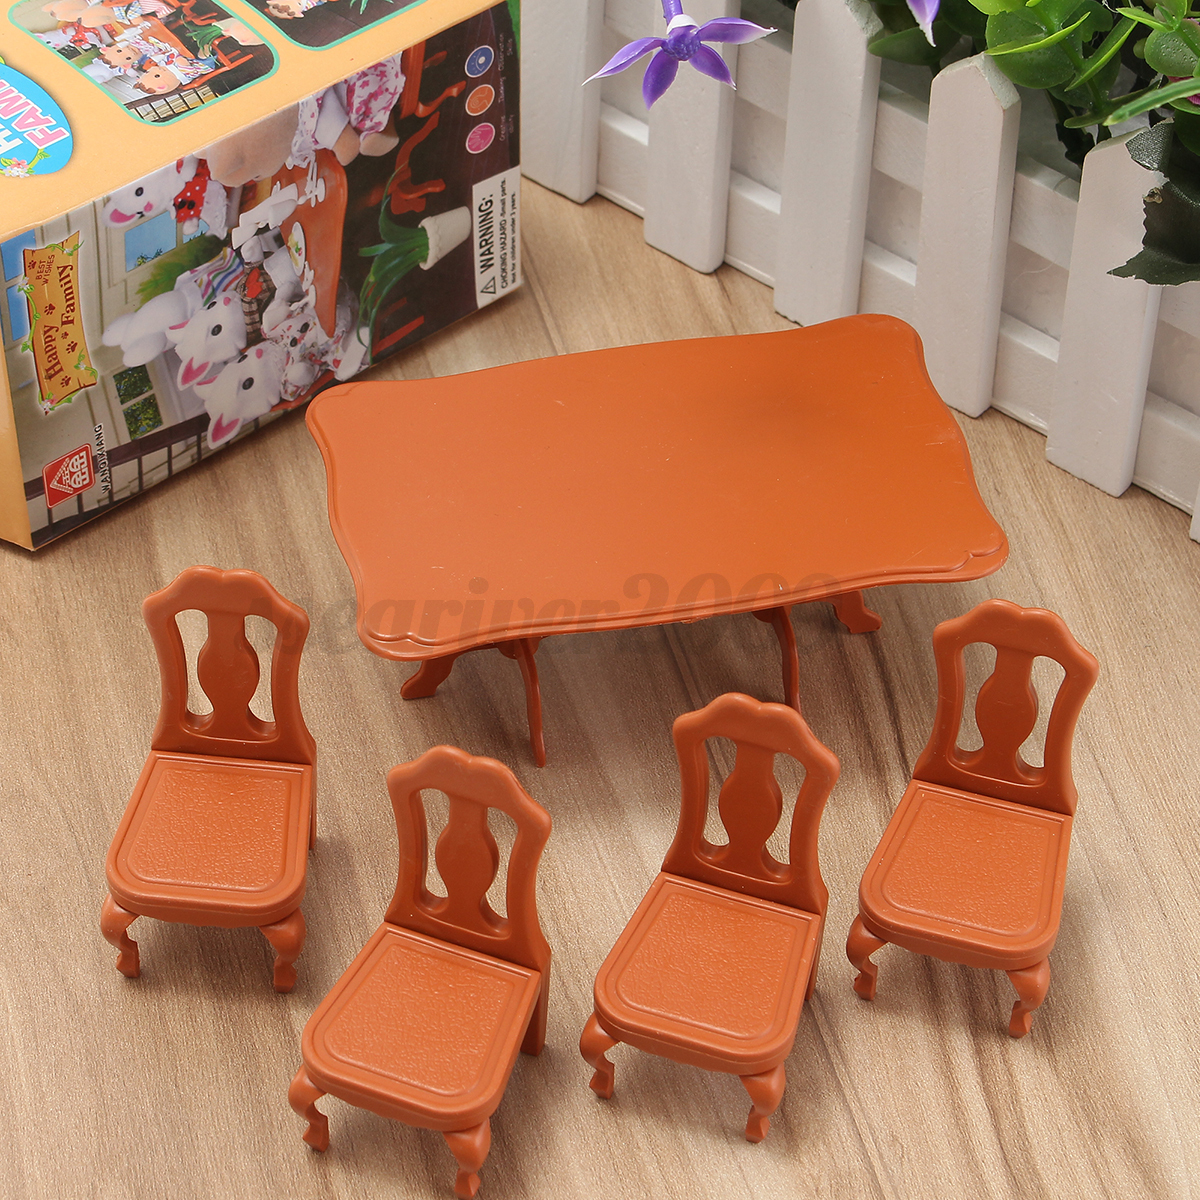 1 12 model doll house miniature furniture dining room table 4 chairs set toys ebay. Black Bedroom Furniture Sets. Home Design Ideas